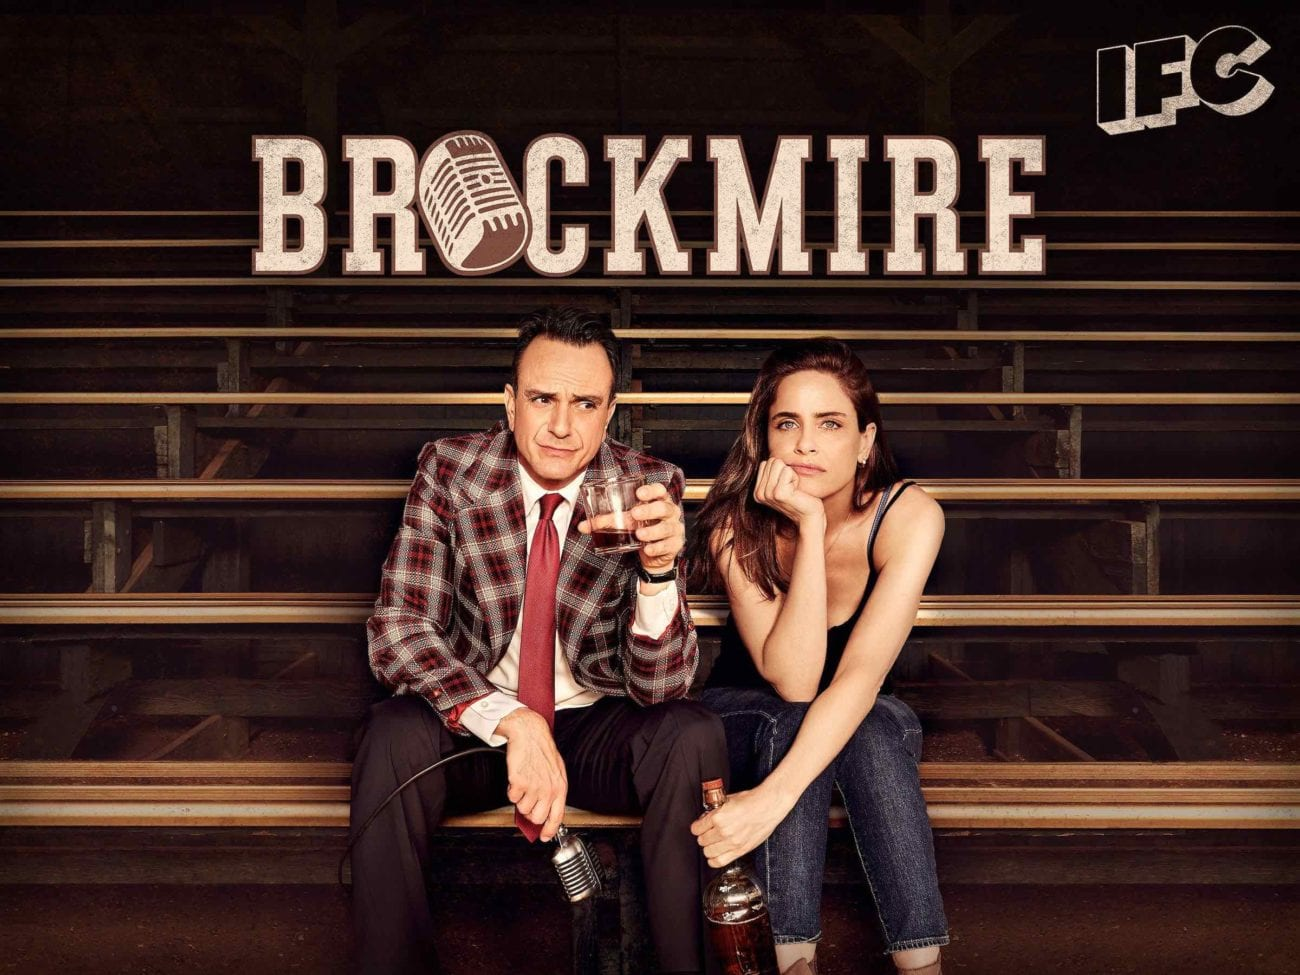 IFC's 'Brockmire' swings for the fences in its fourth and final season premiering in March 2020. Here's everything you need to know about S4.